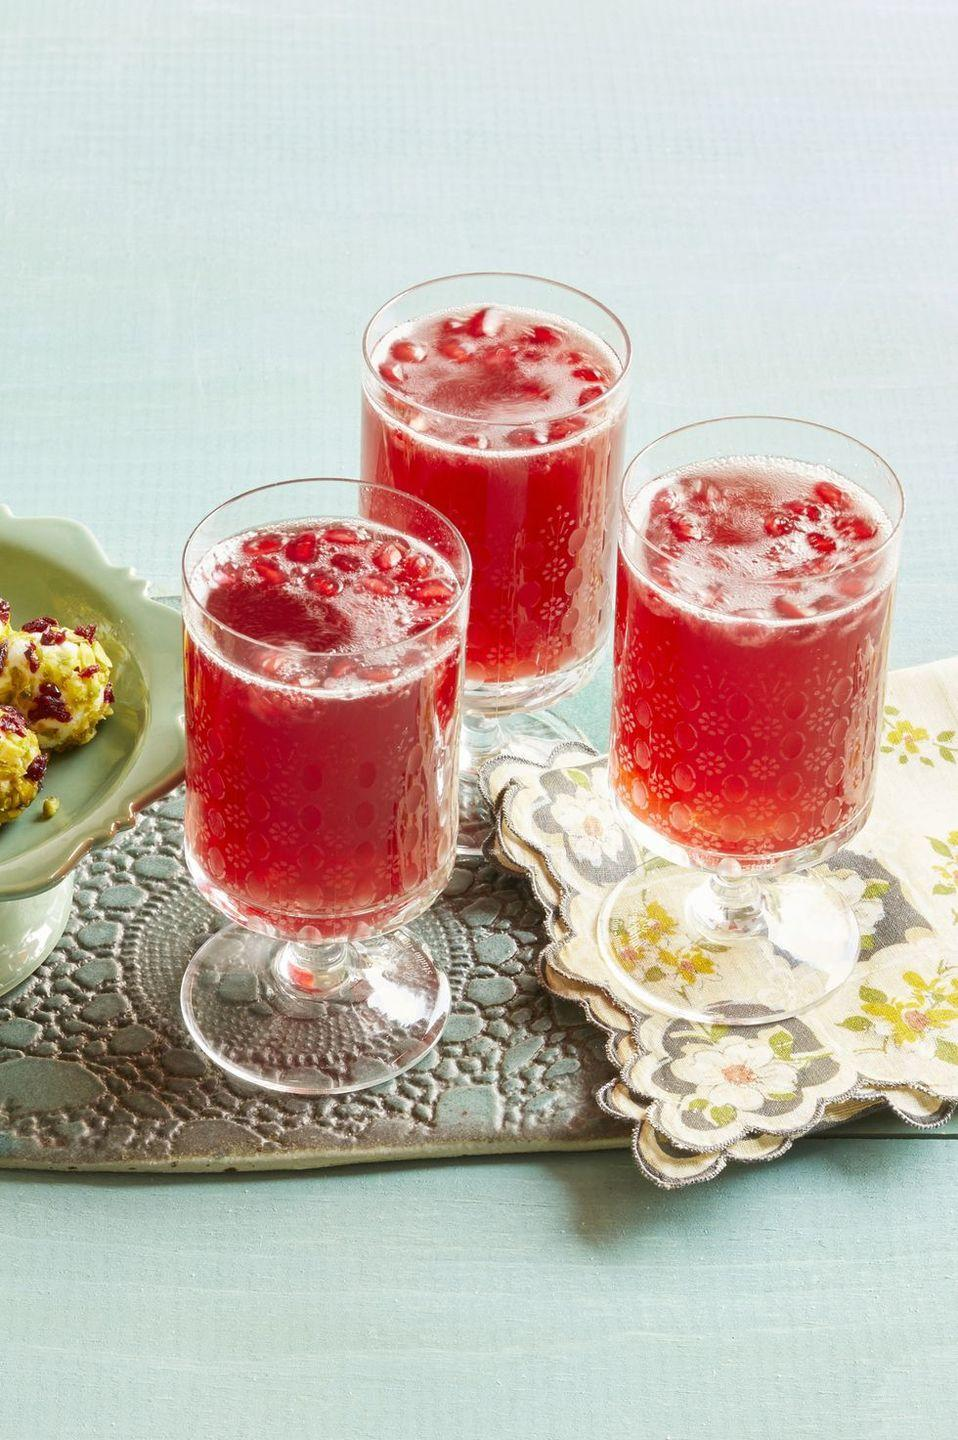 """<p>These pomegranate sparklers shine just as bright as the fireworks. They're light, fruity, and refreshing!</p><p><a href=""""https://www.thepioneerwoman.com/food-cooking/recipes/a32304789/pomegranate-sparklers-recipe/"""" rel=""""nofollow noopener"""" target=""""_blank"""" data-ylk=""""slk:Get Ree's recipe."""" class=""""link rapid-noclick-resp""""><strong>Get Ree's recipe. </strong></a></p><p><a class=""""link rapid-noclick-resp"""" href=""""https://go.redirectingat.com?id=74968X1596630&url=https%3A%2F%2Fwww.walmart.com%2Fsearch%2F%3Fquery%3Dcocktail%2Bglasses&sref=https%3A%2F%2Fwww.thepioneerwoman.com%2Ffood-cooking%2Fmeals-menus%2Fg36432840%2Ffourth-of-july-drinks%2F"""" rel=""""nofollow noopener"""" target=""""_blank"""" data-ylk=""""slk:SHOP COCKTAIL GLASSES"""">SHOP COCKTAIL GLASSES</a></p>"""